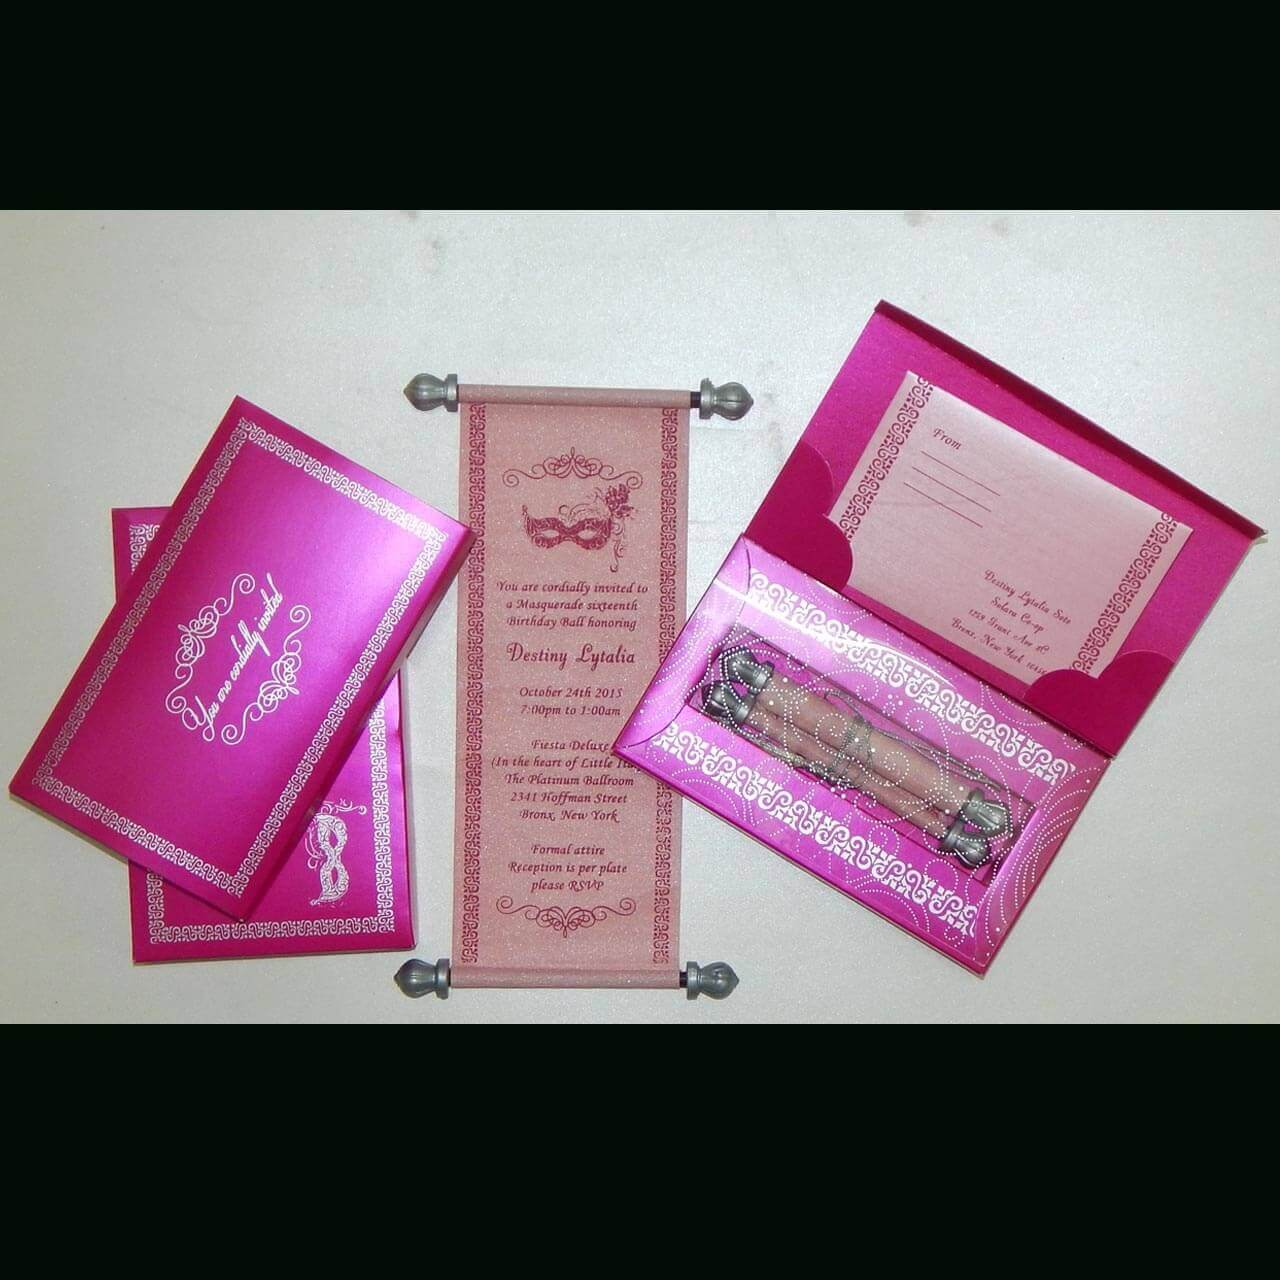 SCROLL WEDDING CARDS T1-1003 Full View